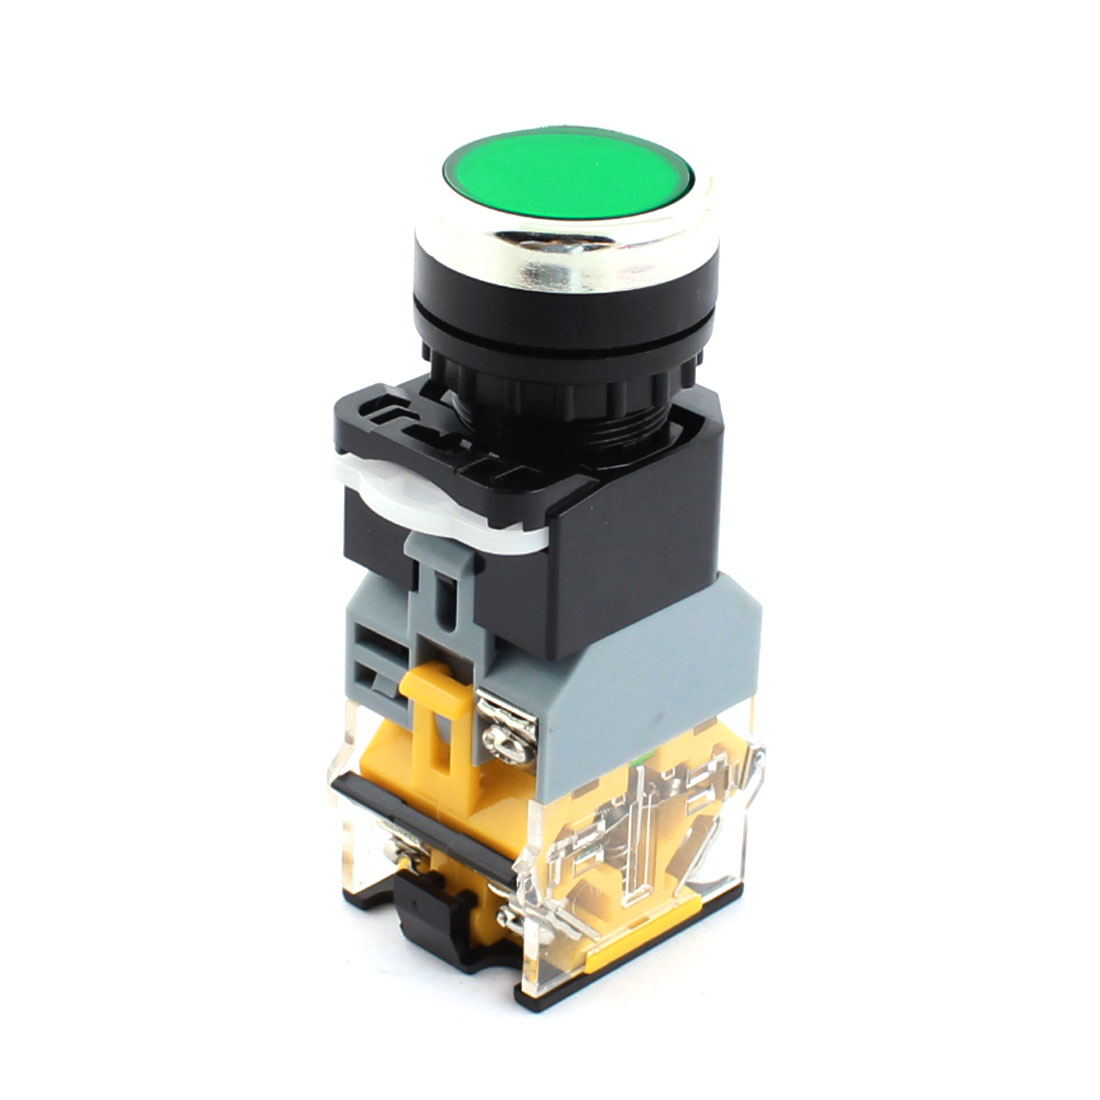 AC220V 22mm Dia Thread Panel Mount DPST 1NO 1NC 6 Screw Terminal Momentary Green Pilot Lamp Plastic Pushbutton Switch